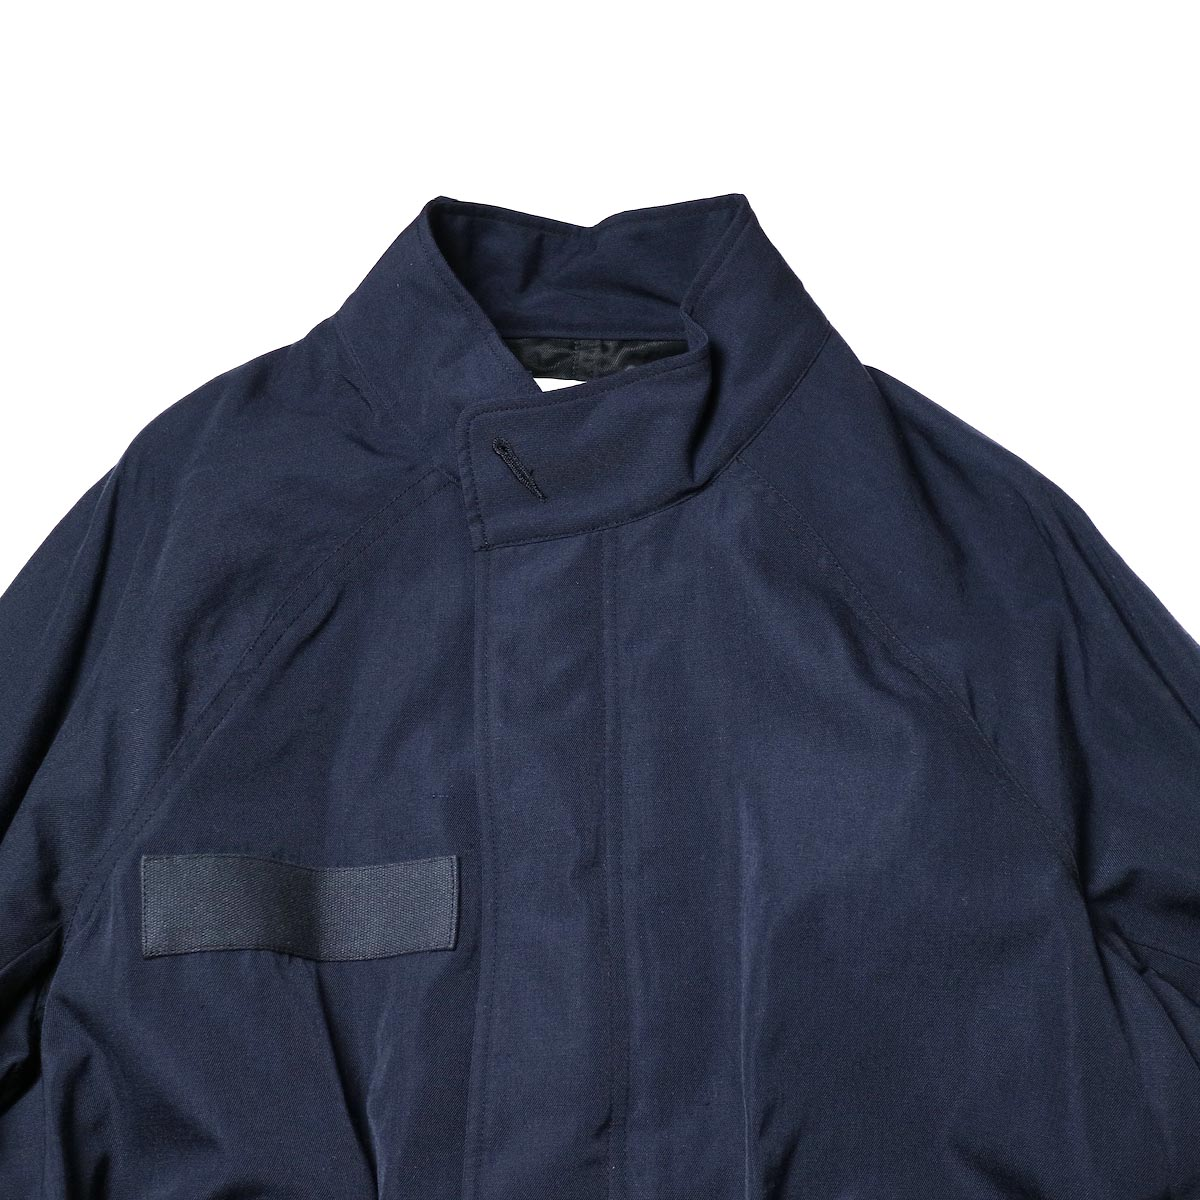 visvim / SIX-FIVE FISHTAIL PARKA (W/L) (Navy)スタンドカラー